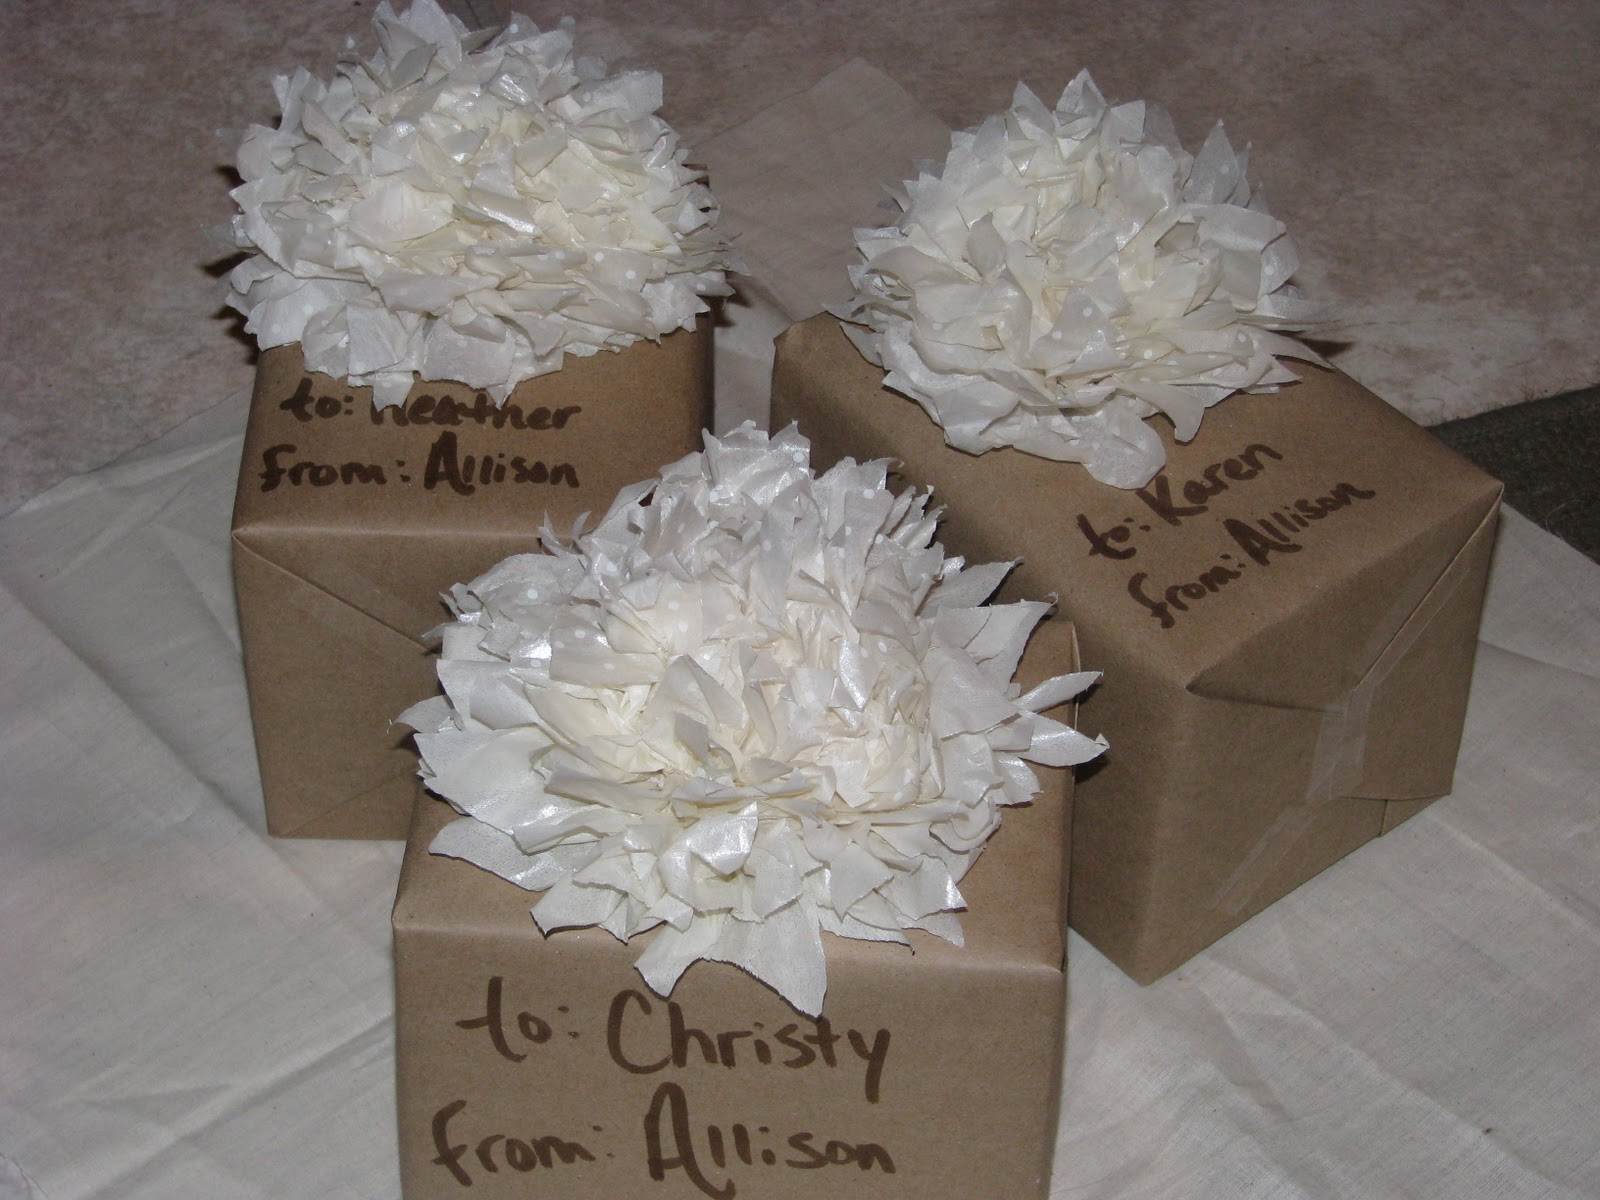 How To Wrap A Wedding Gift: David And Al's Wedding: Hostess Gifts